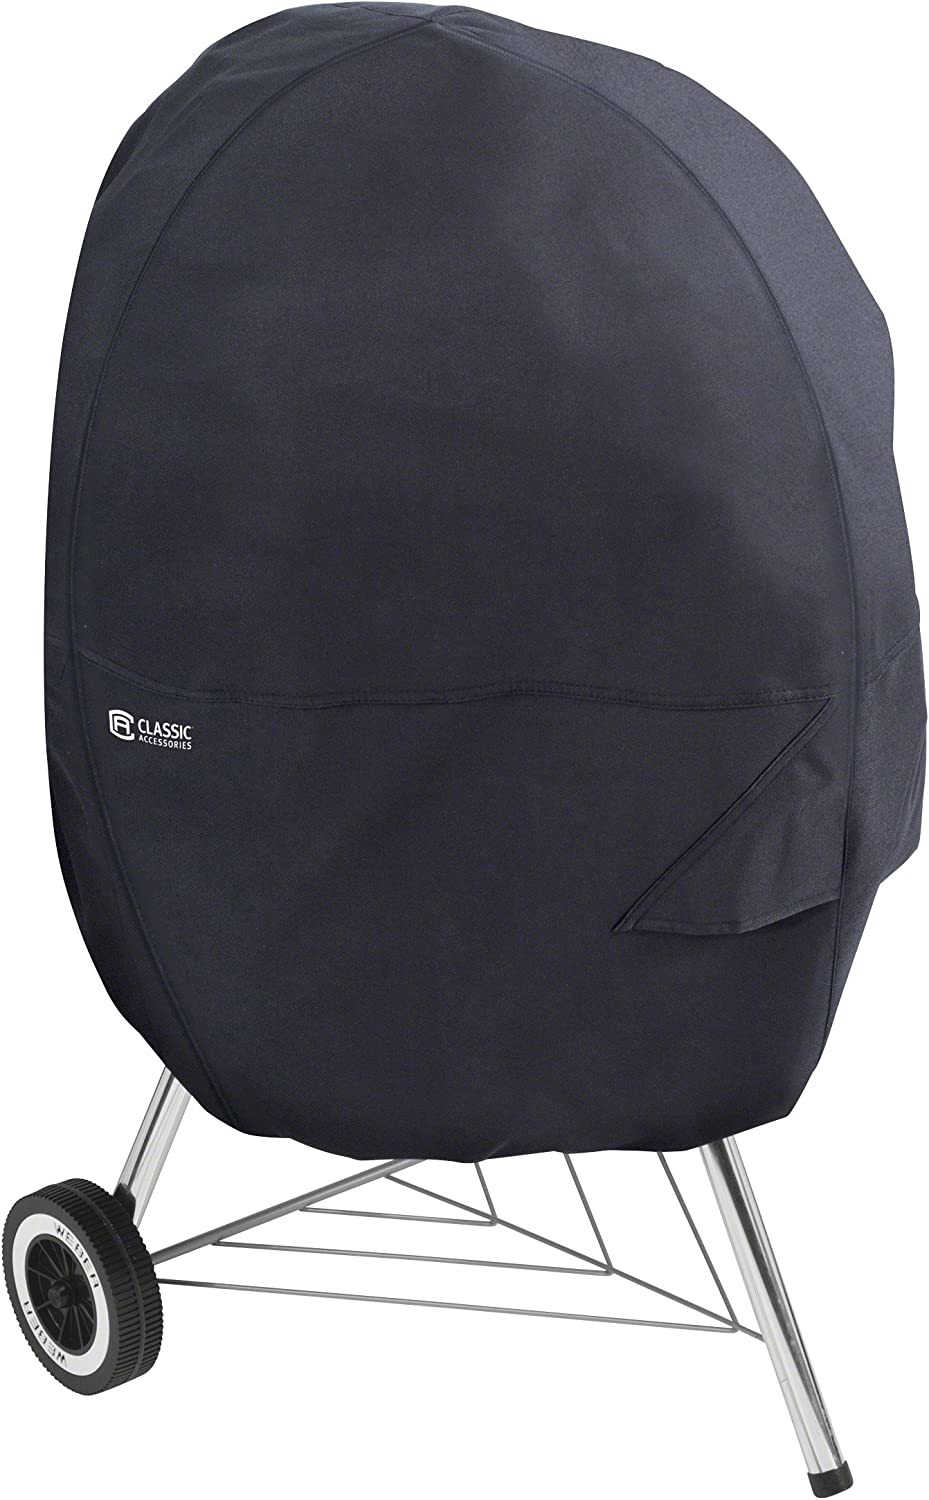 Classic Accessories 55-903-040401-EC Patio Kettle Grill Cover, Large, Black